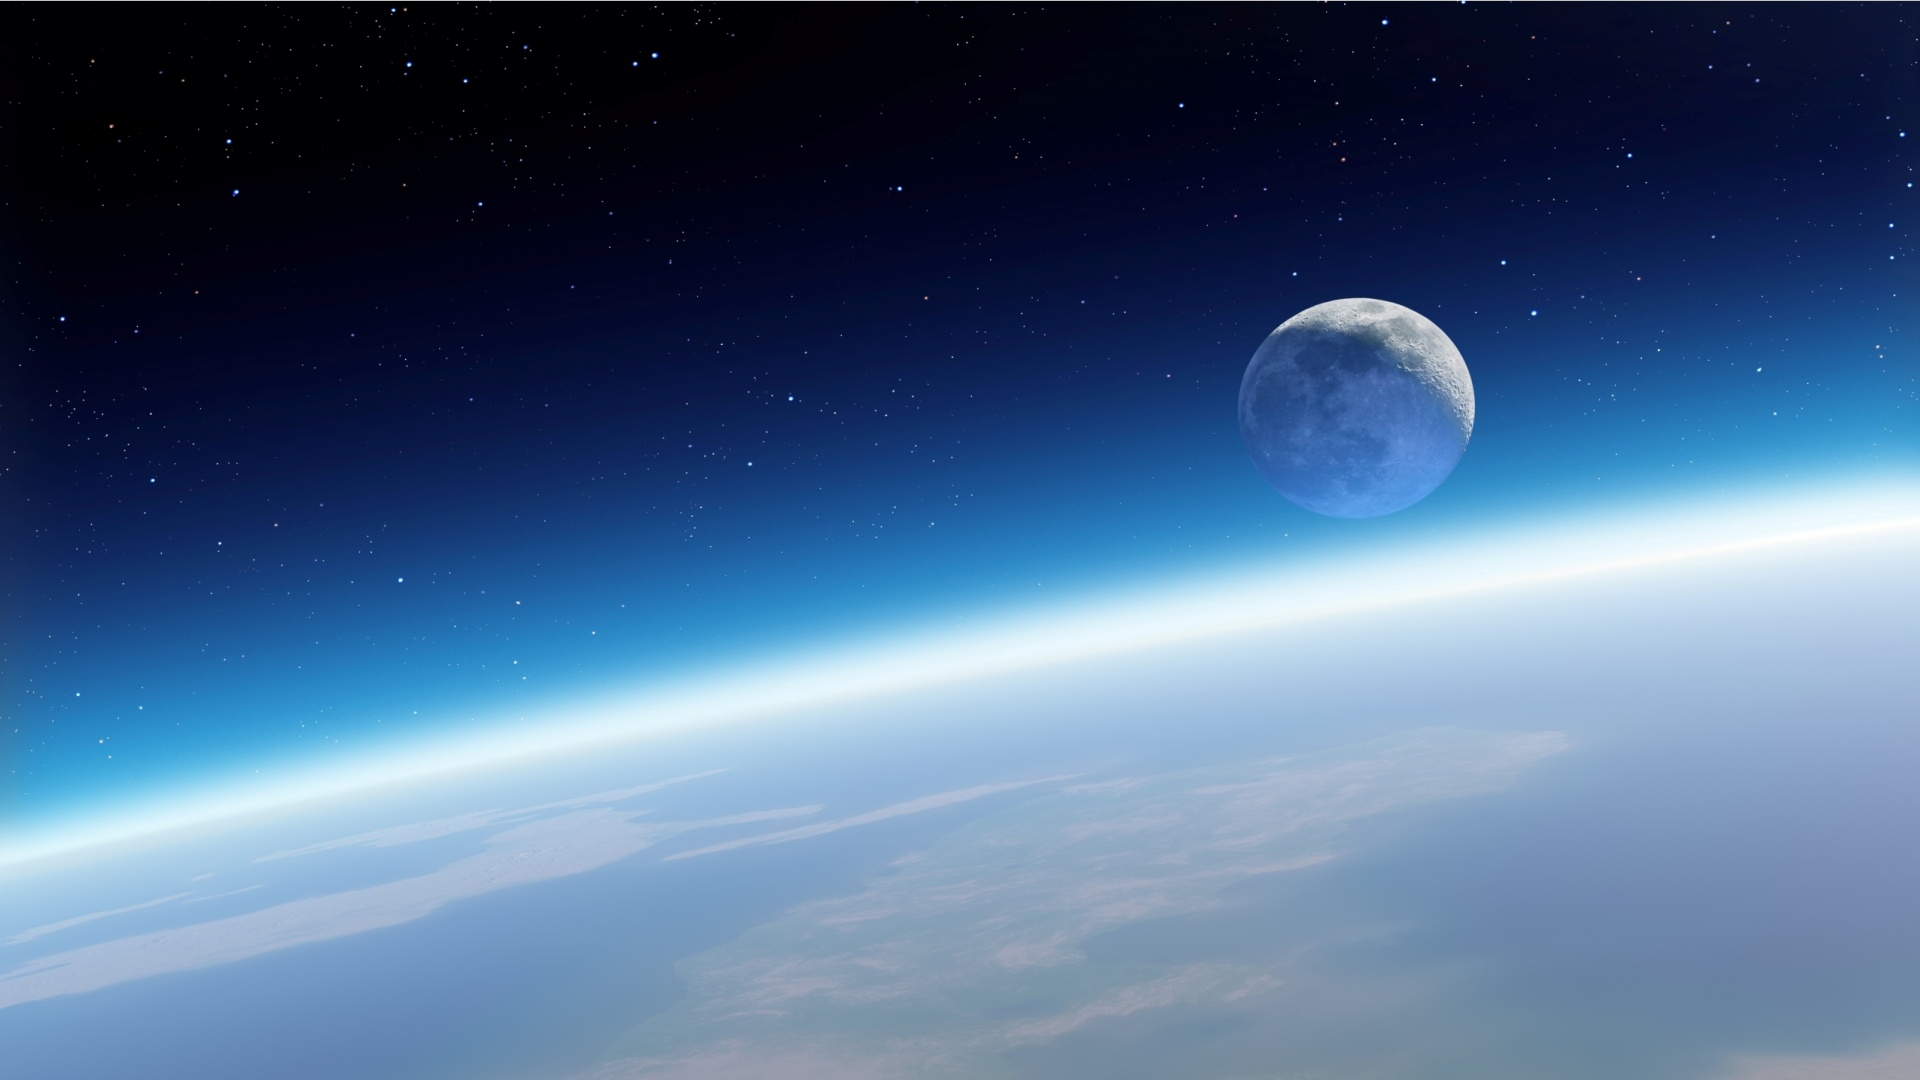 1080 x 1920 moon wallpaper: Earth And Moon From Space Wallpapers